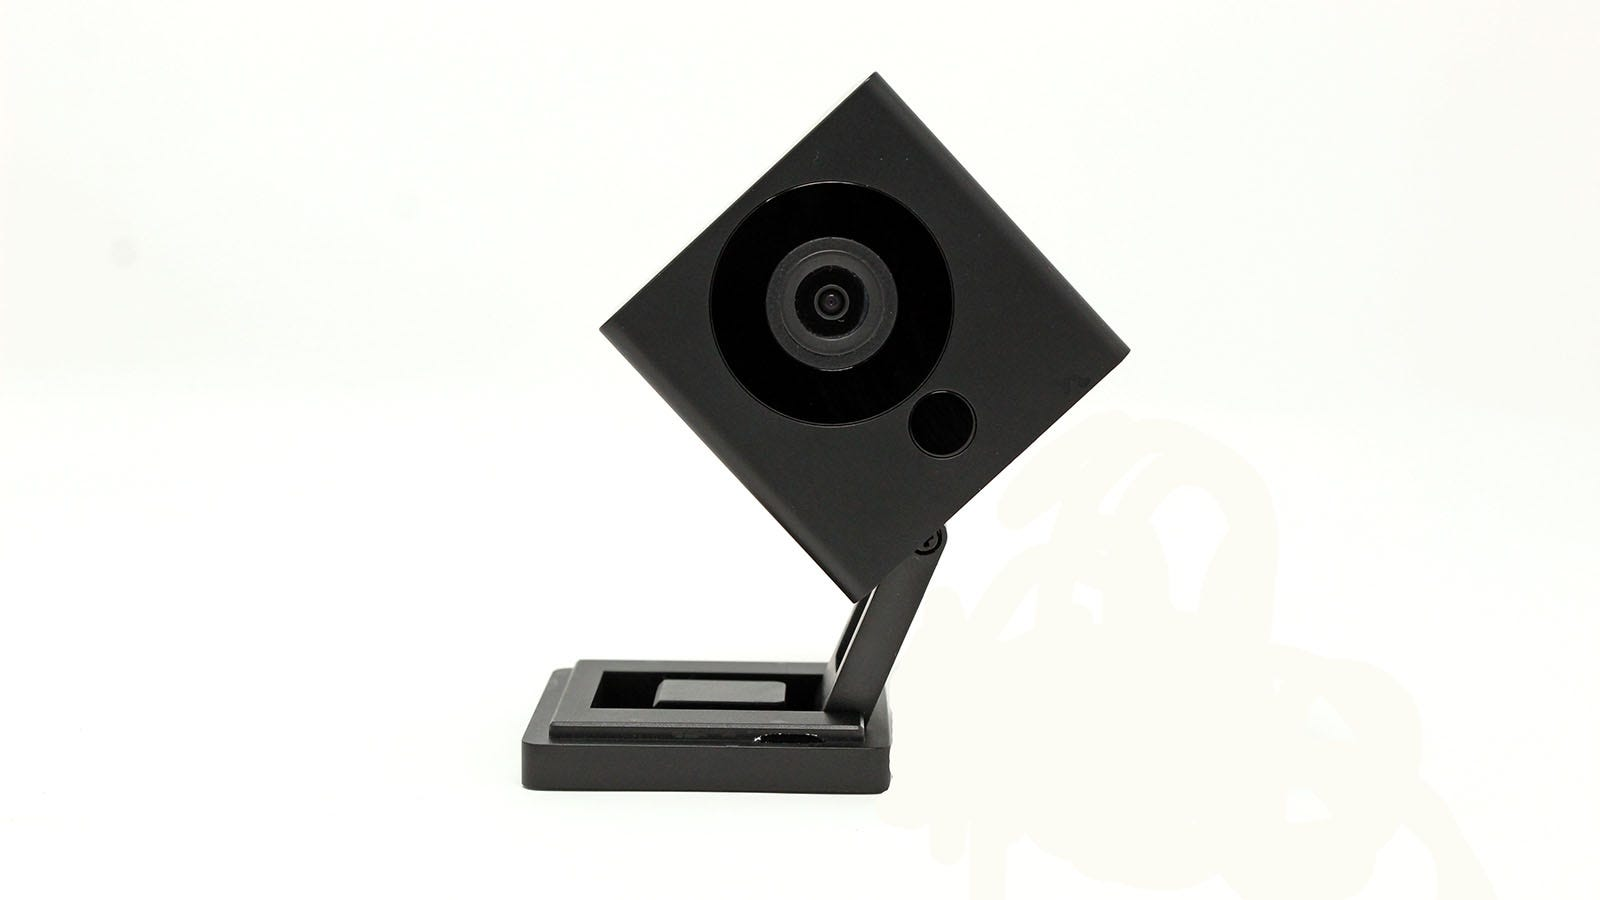 A black Wyze camera with a tilted head.